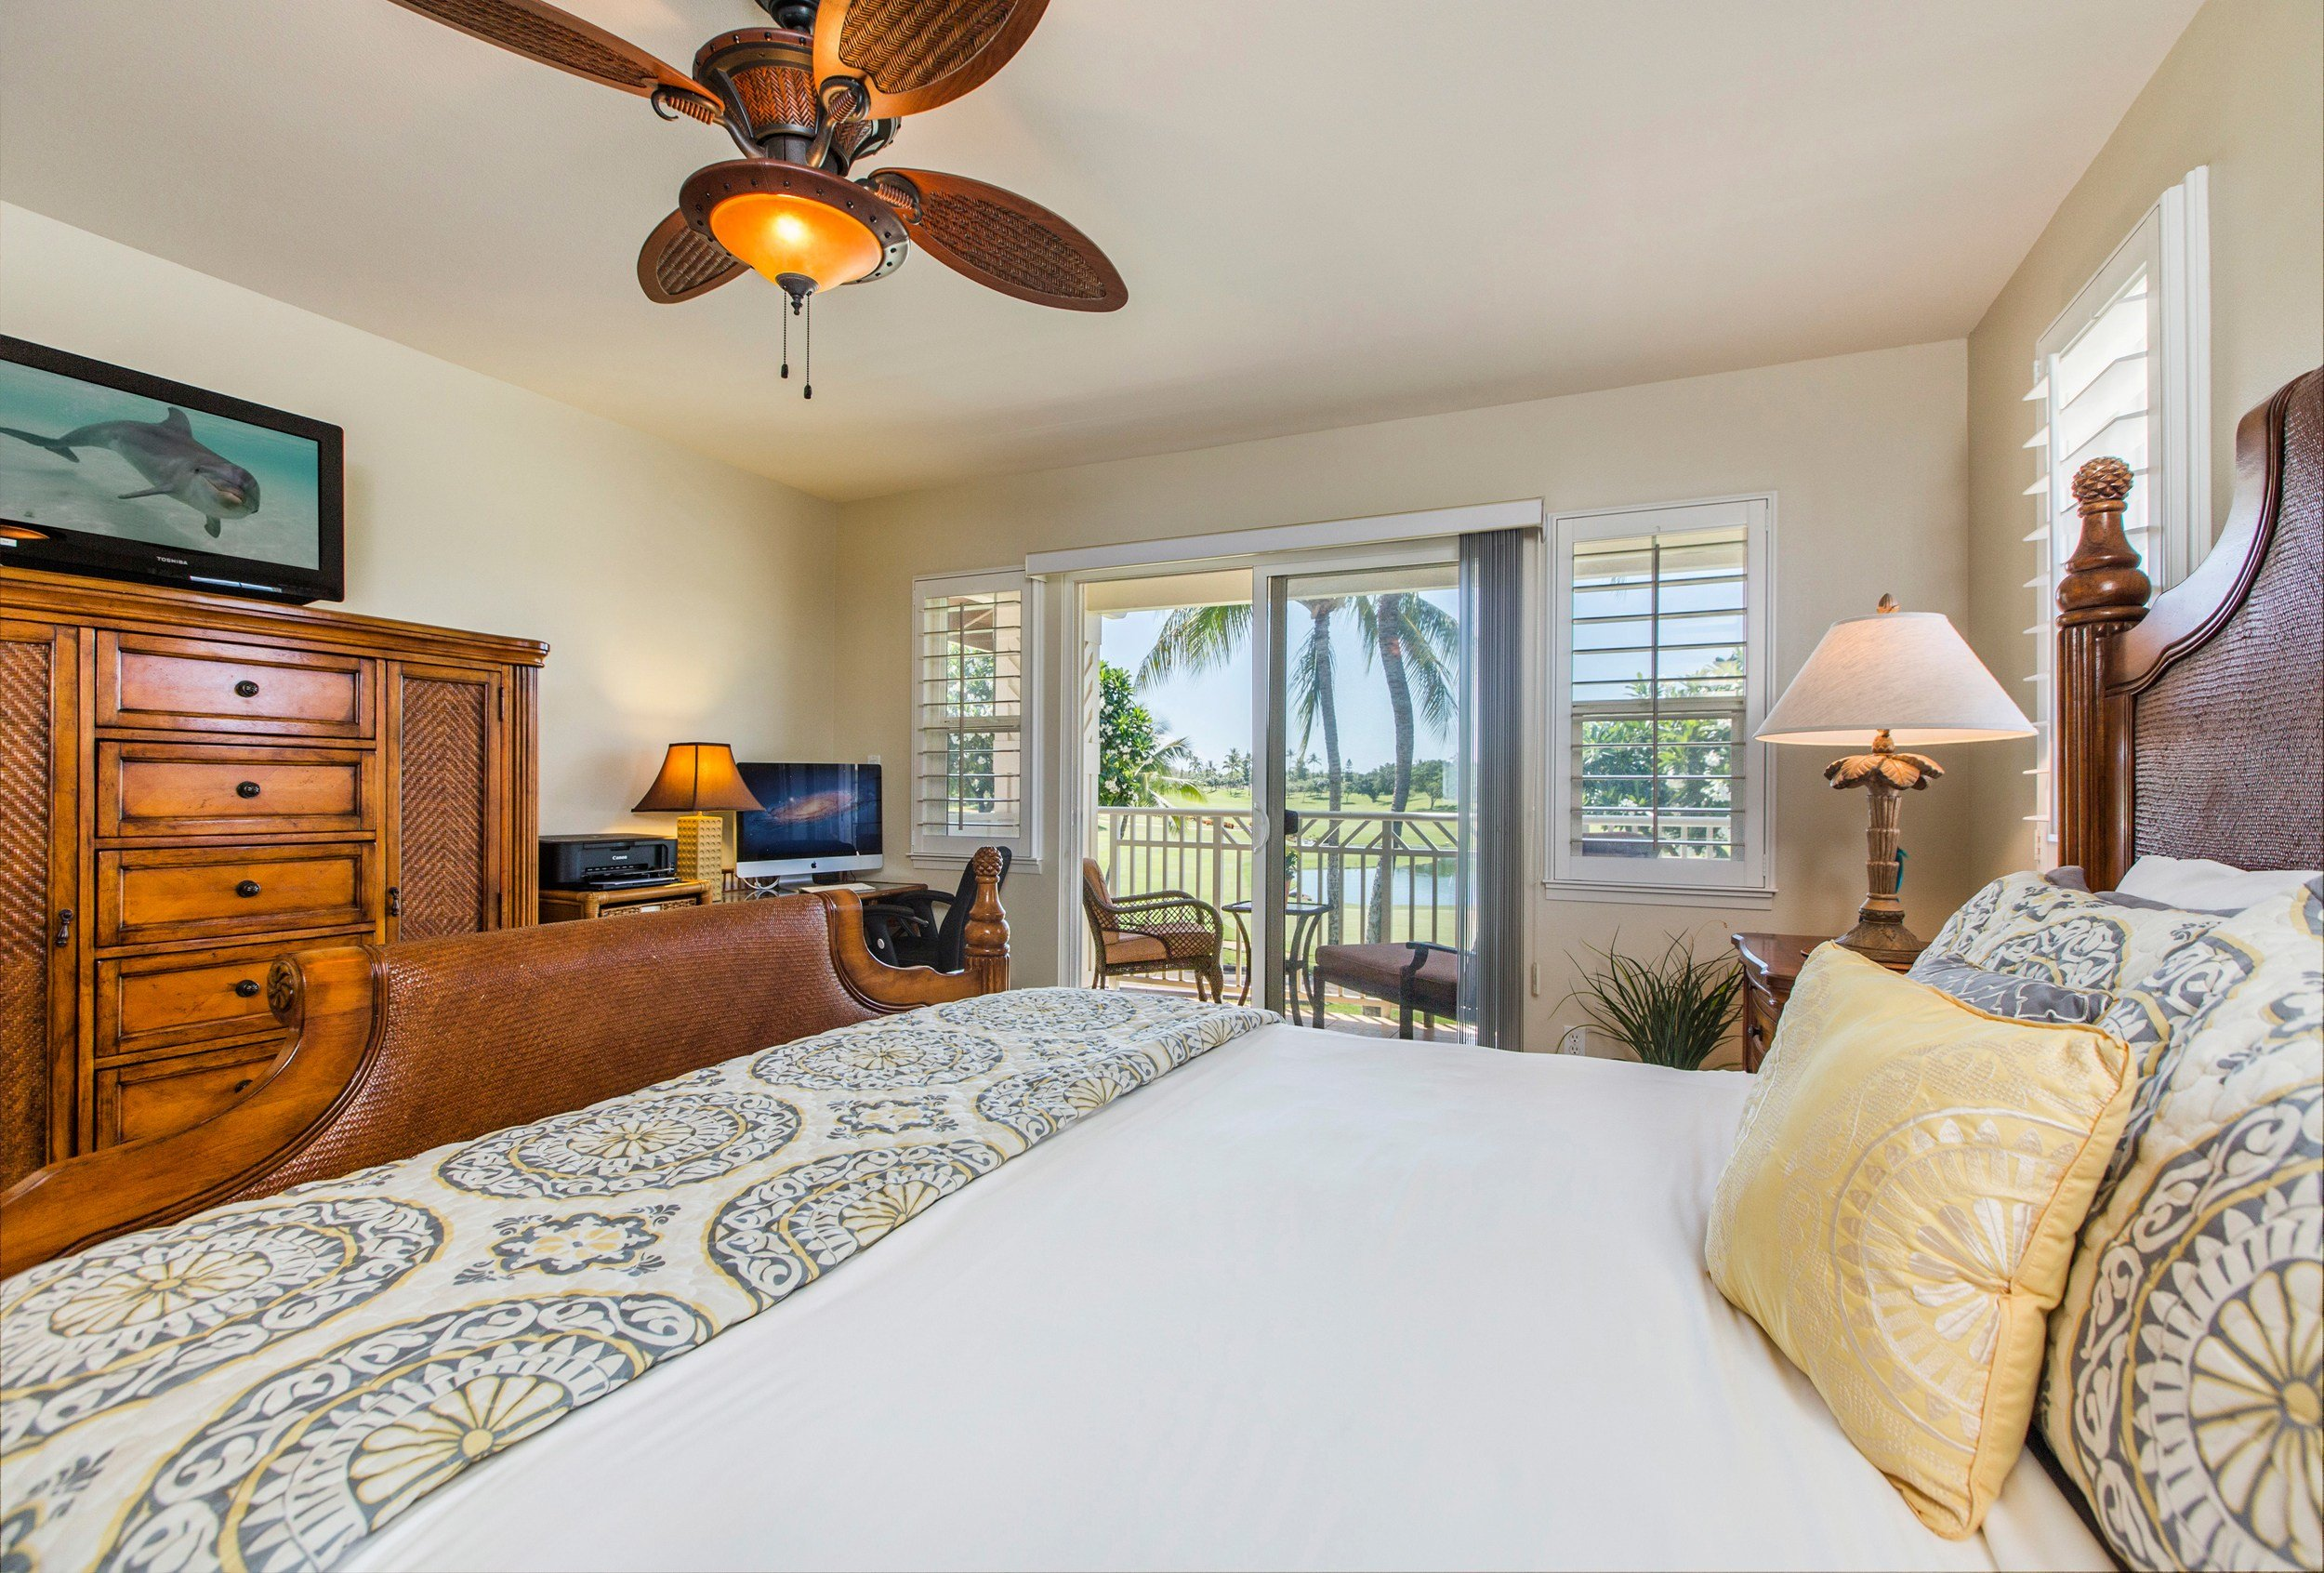 Best 1 Bedroom Apartments In Kapolei Hawaii Psoriasisguru Com With Pictures